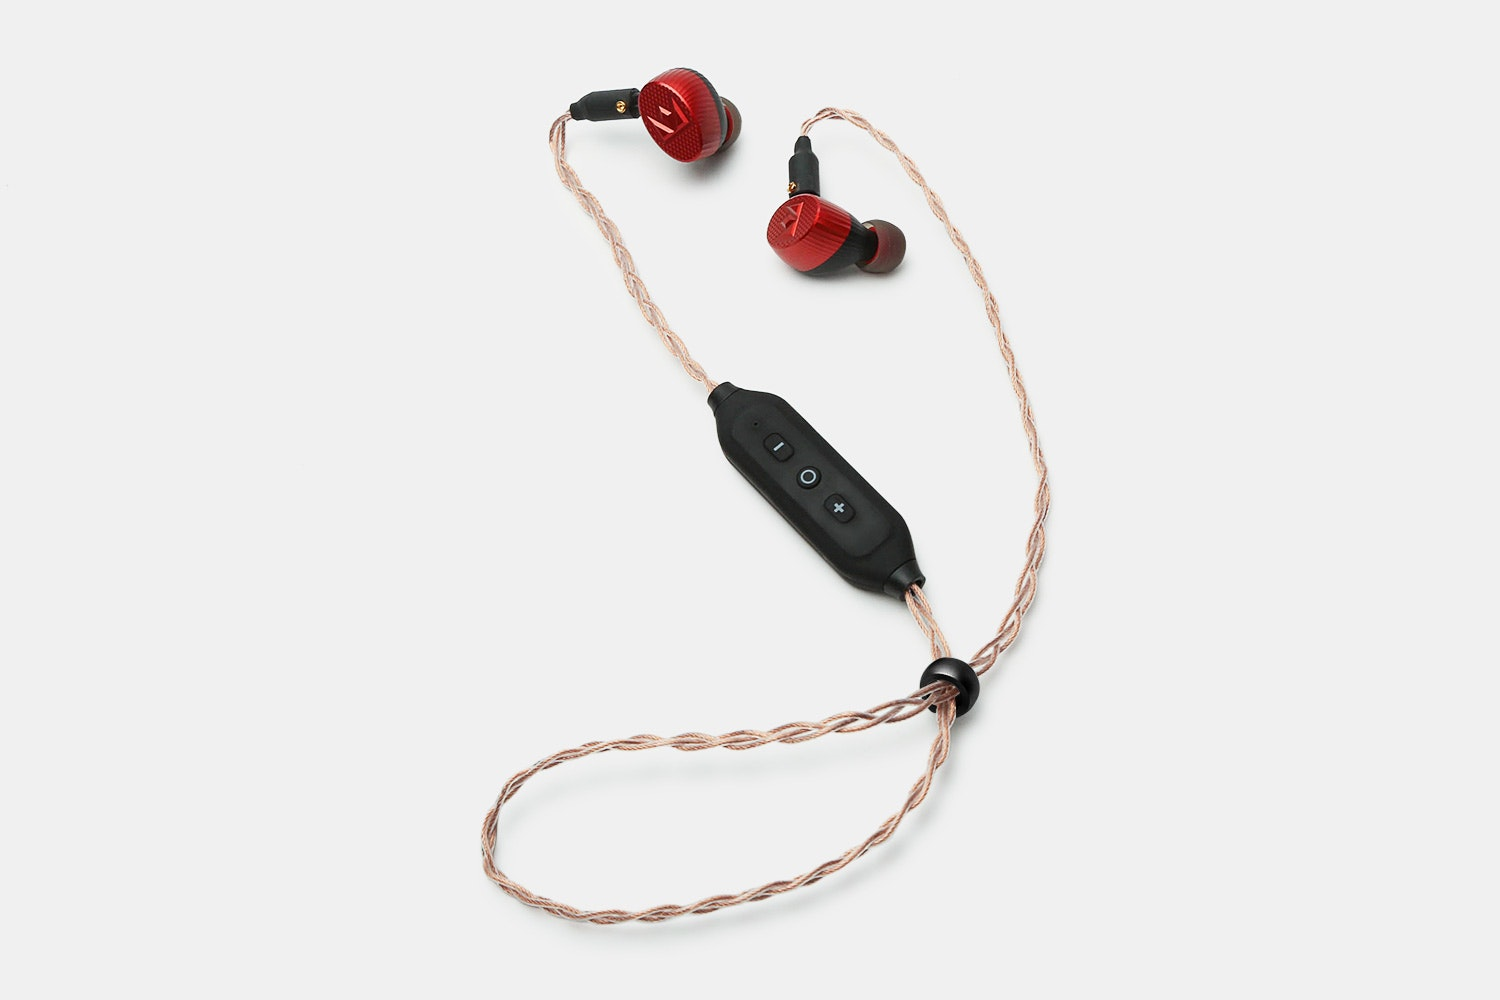 PlusSound Bluetooth IEM & Headphone Cables